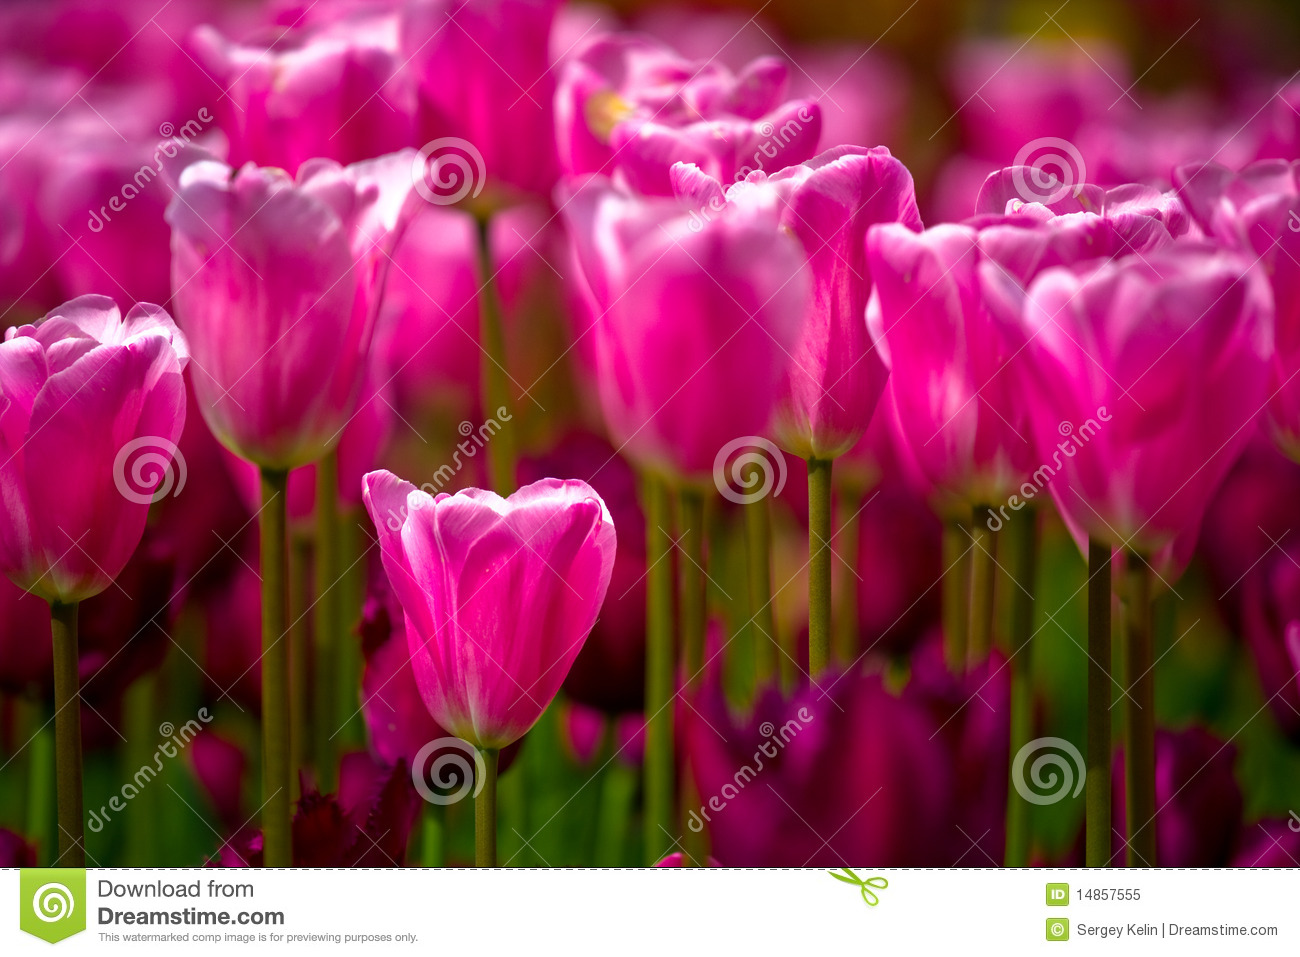 Sea of pink tulips